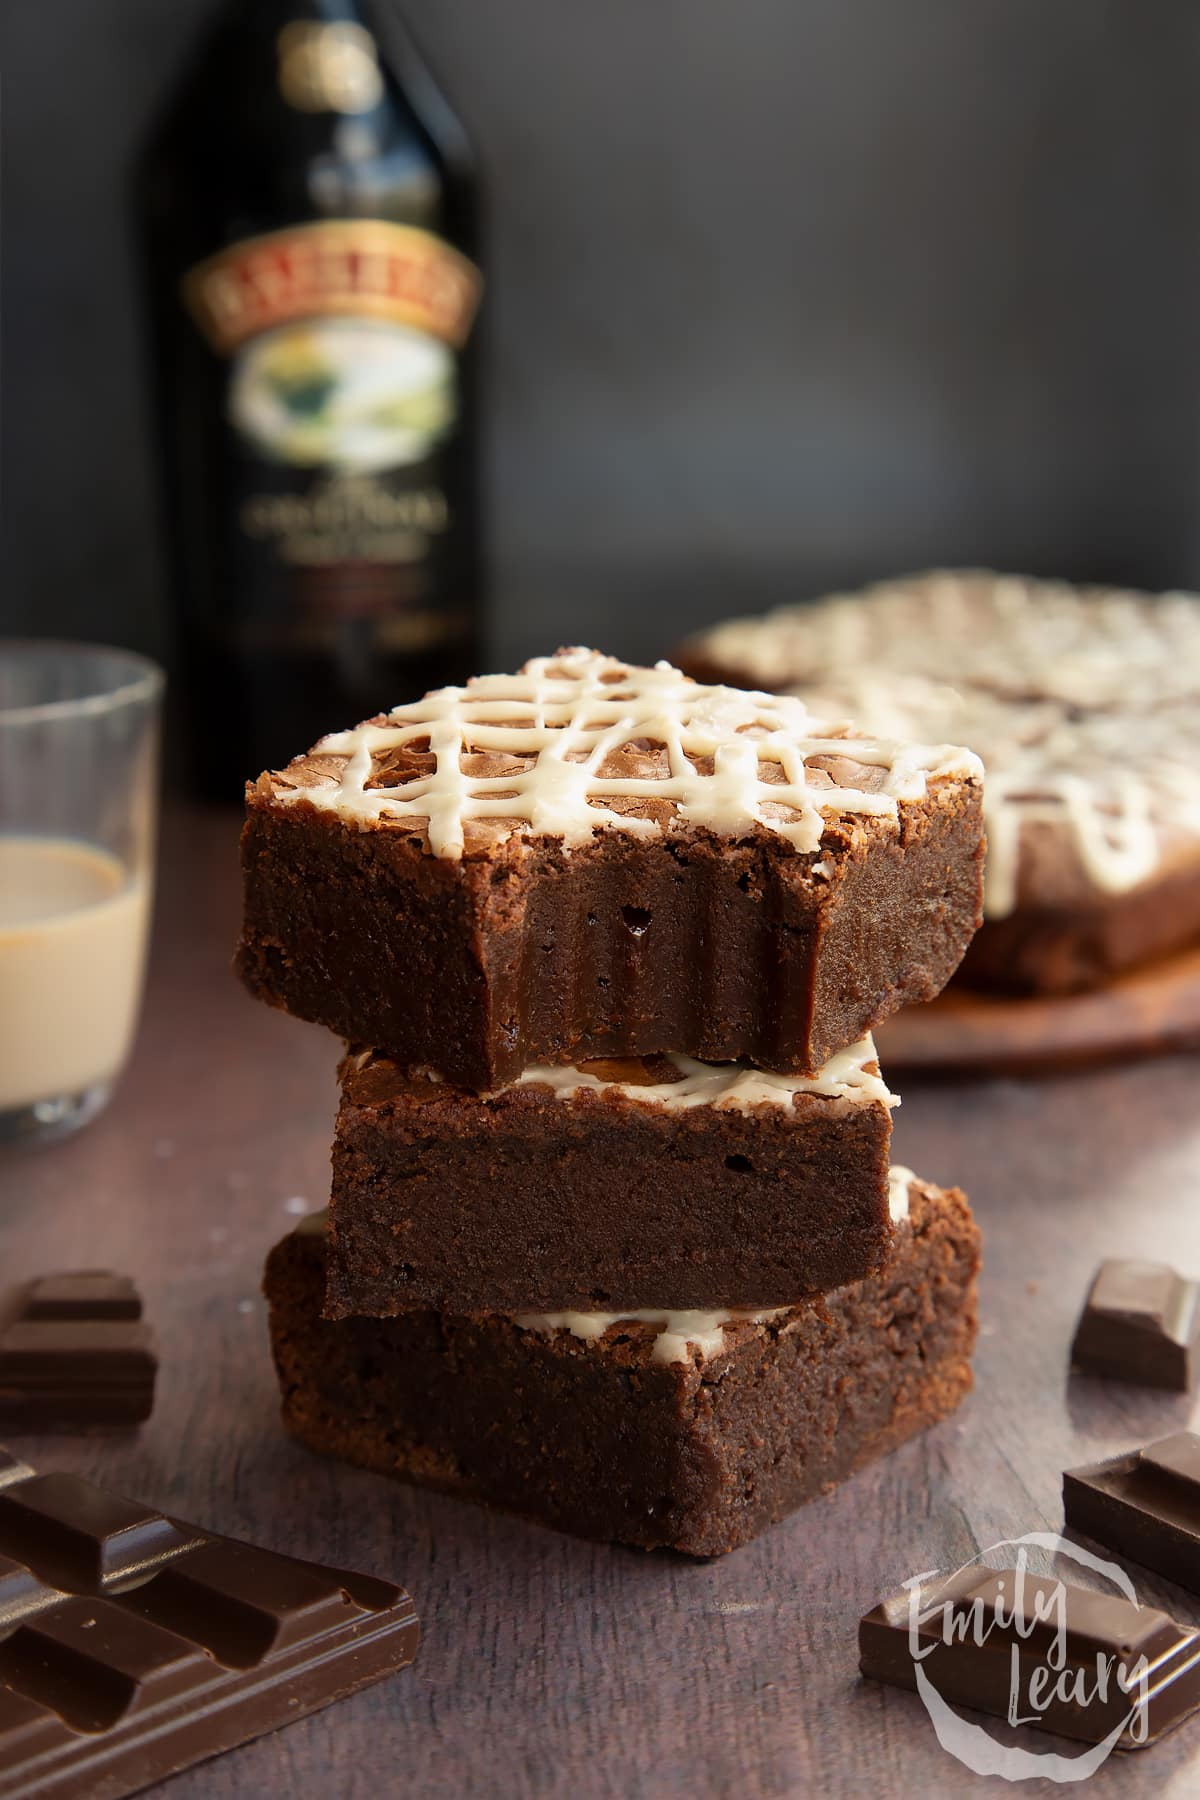 Stack of iced Baileys brownies, with more brownies and a bottle of Baileys in the background. One brownie has a bite out of it.